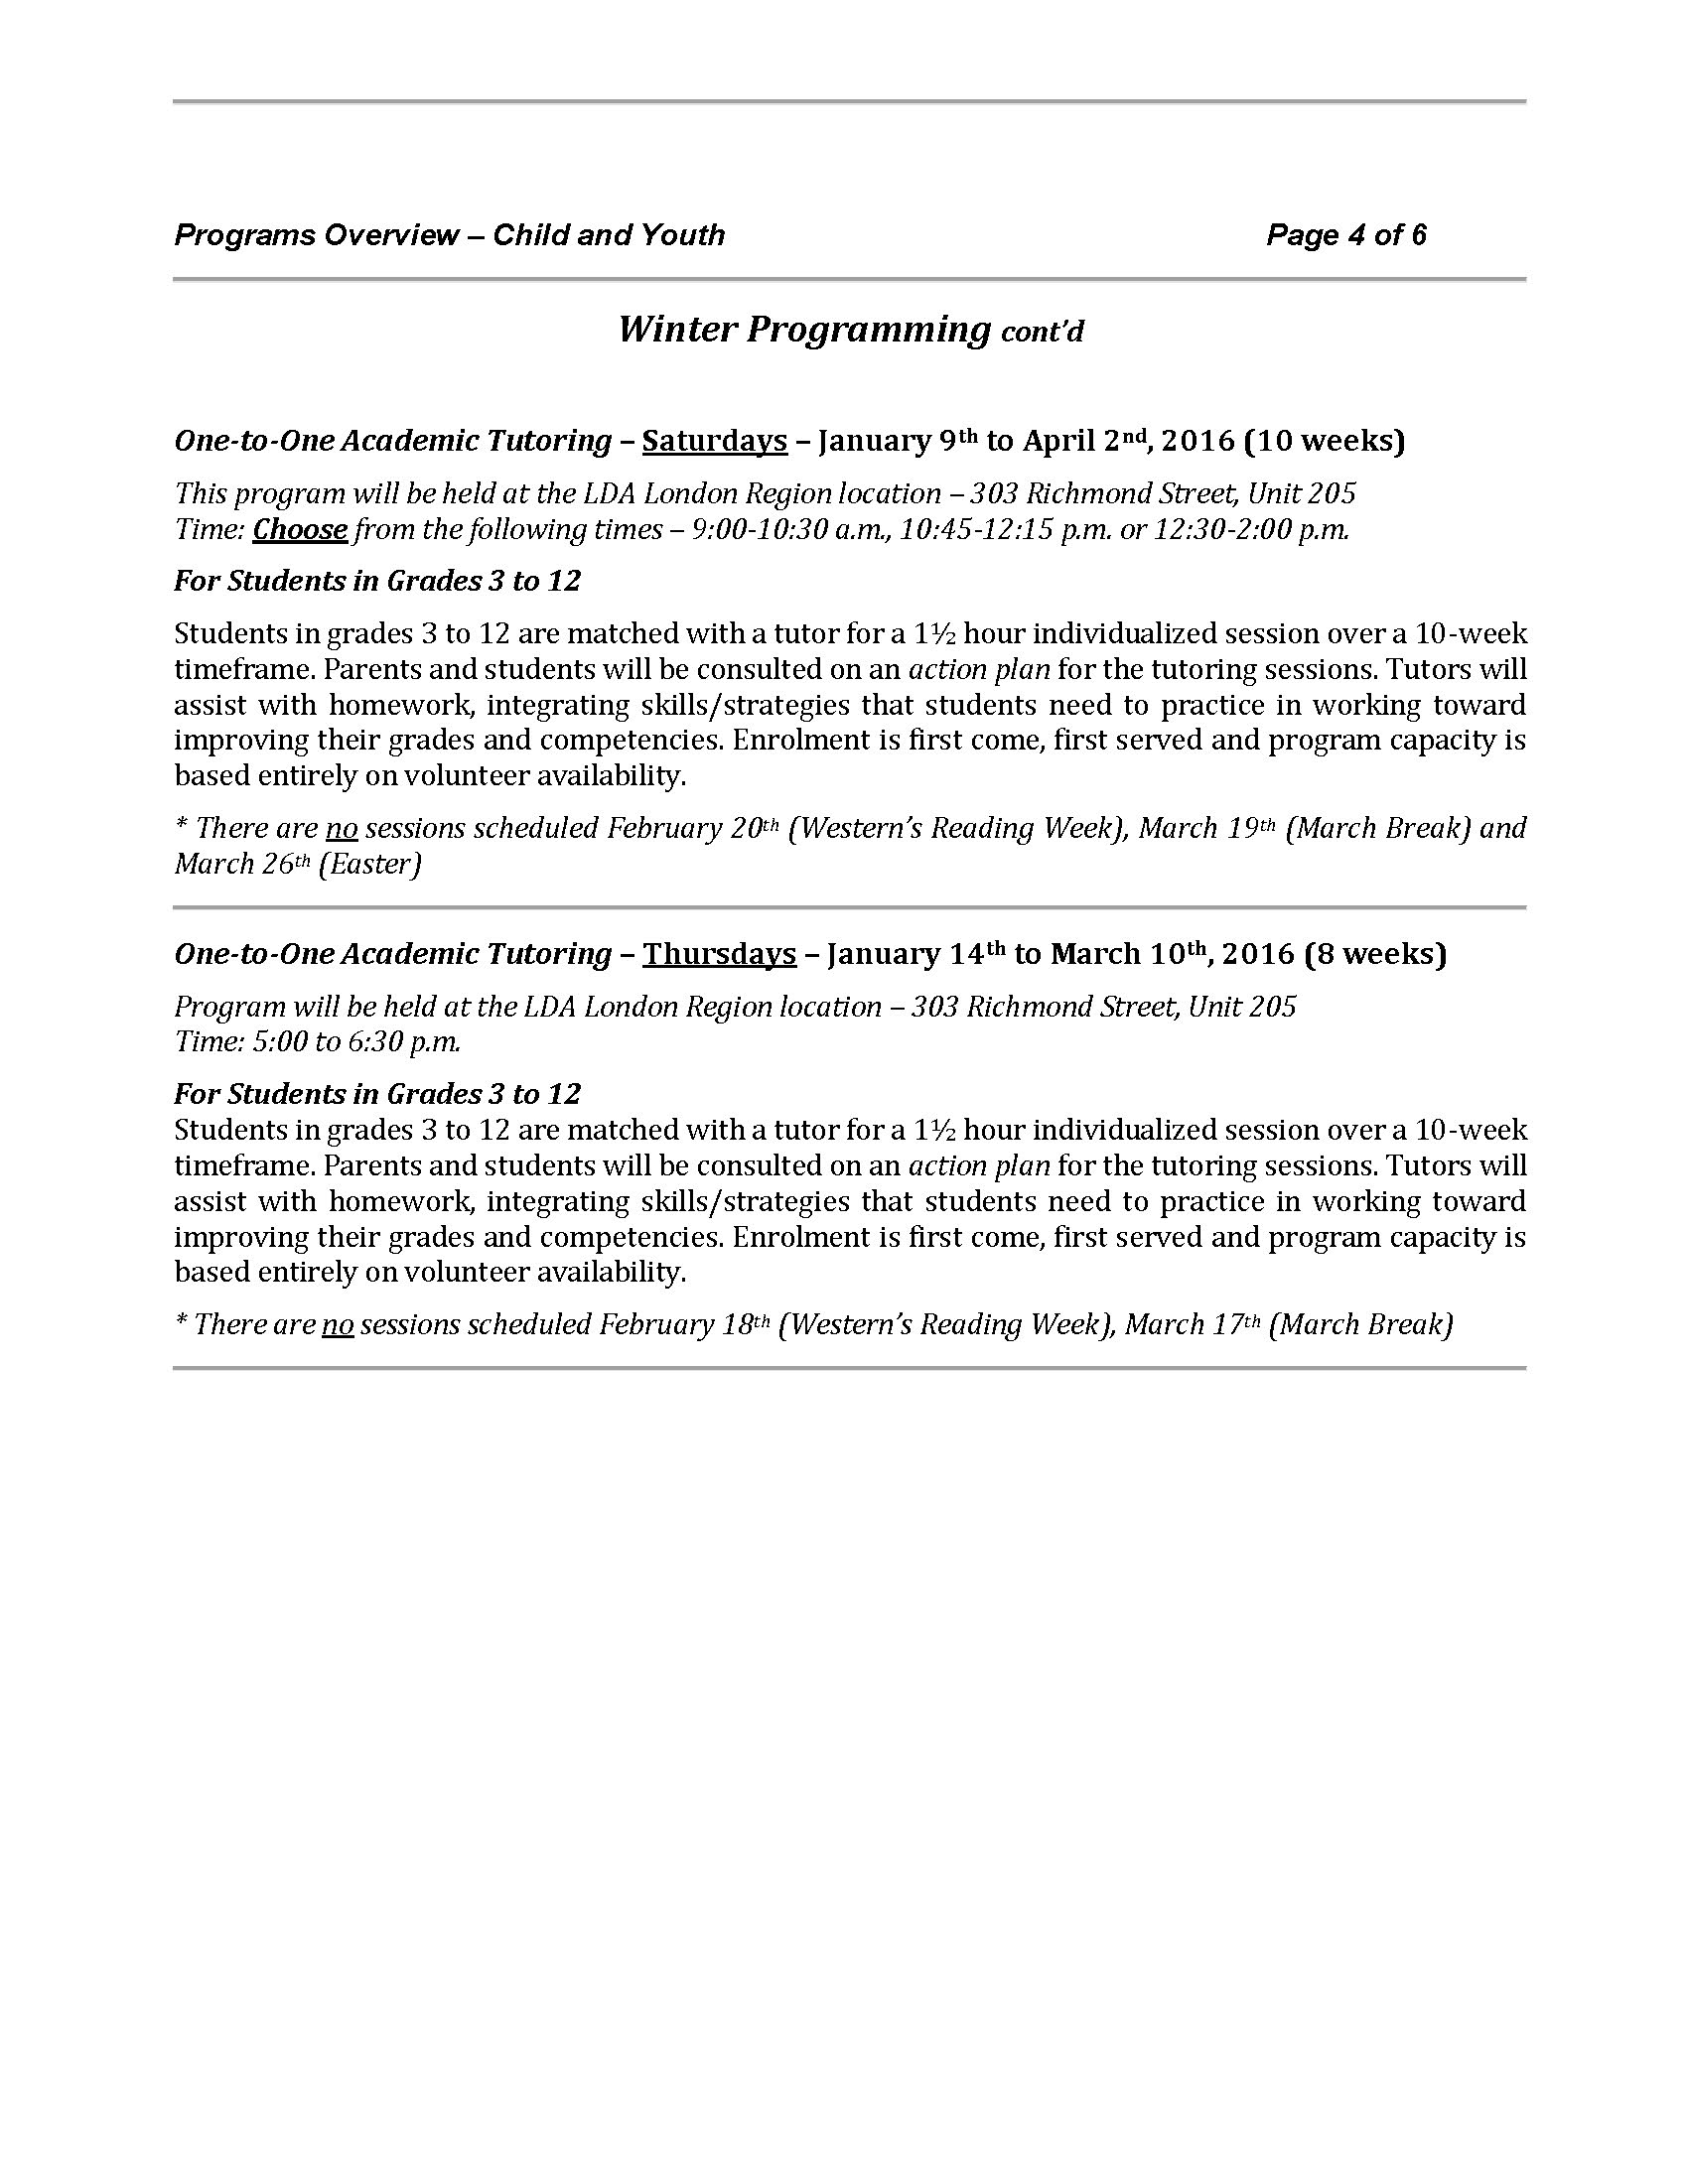 Programs Overview 2015-2016_Page_4.jpg